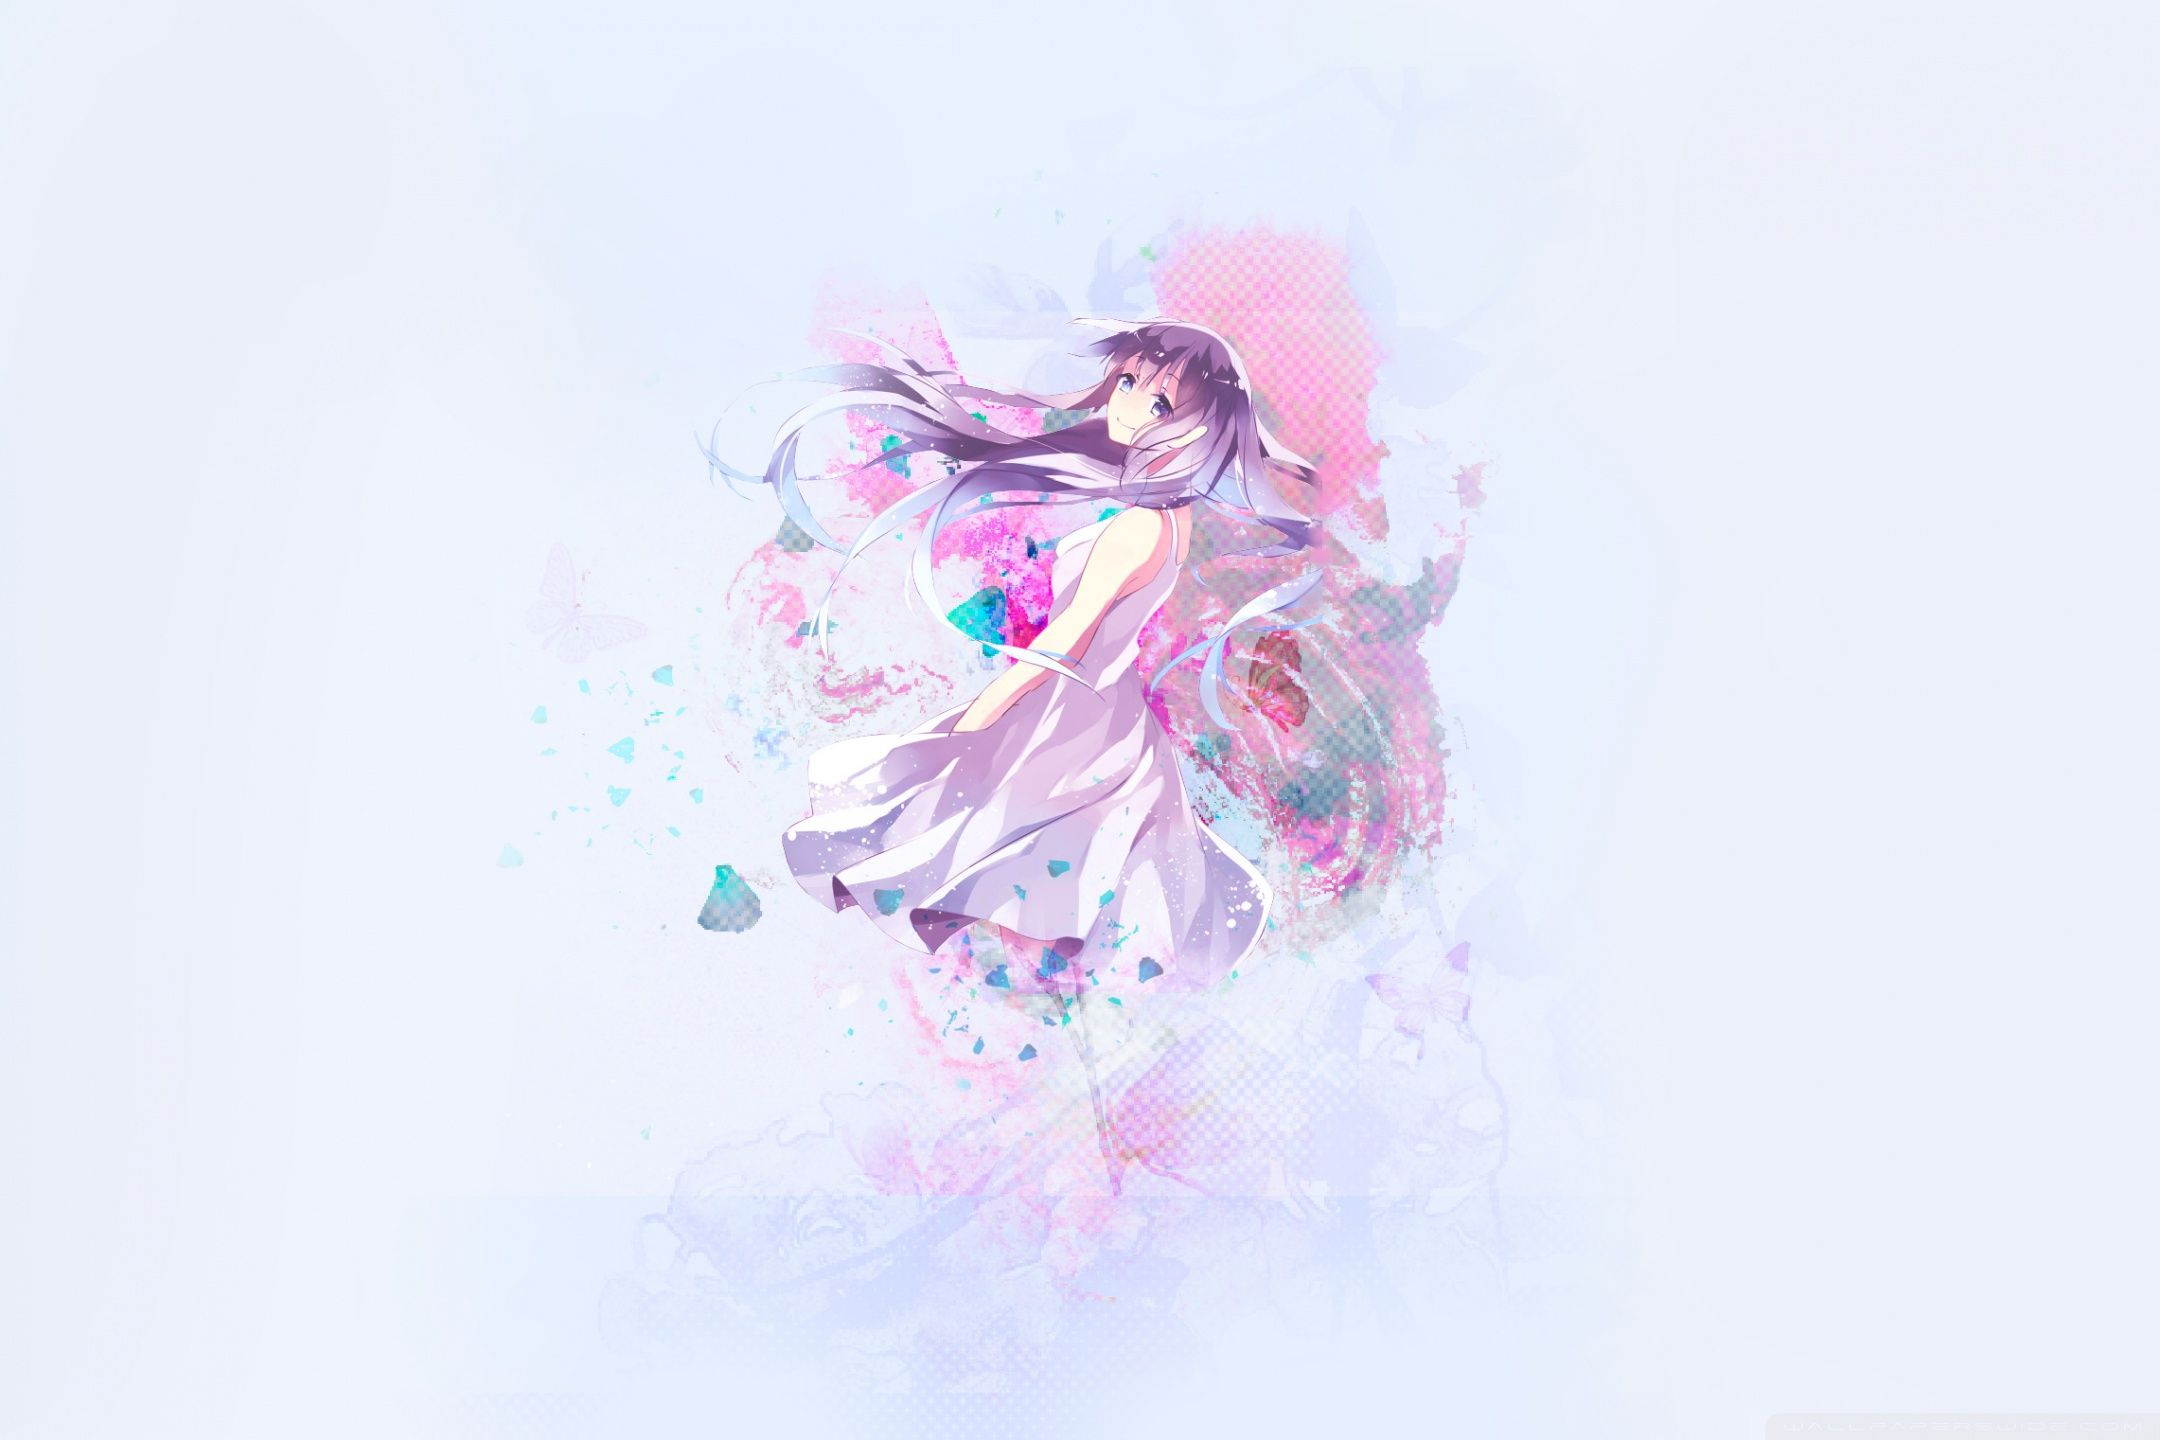 Pastel Anime Wallpapers Top Free Pastel Anime Backgrounds Wallpaperaccess